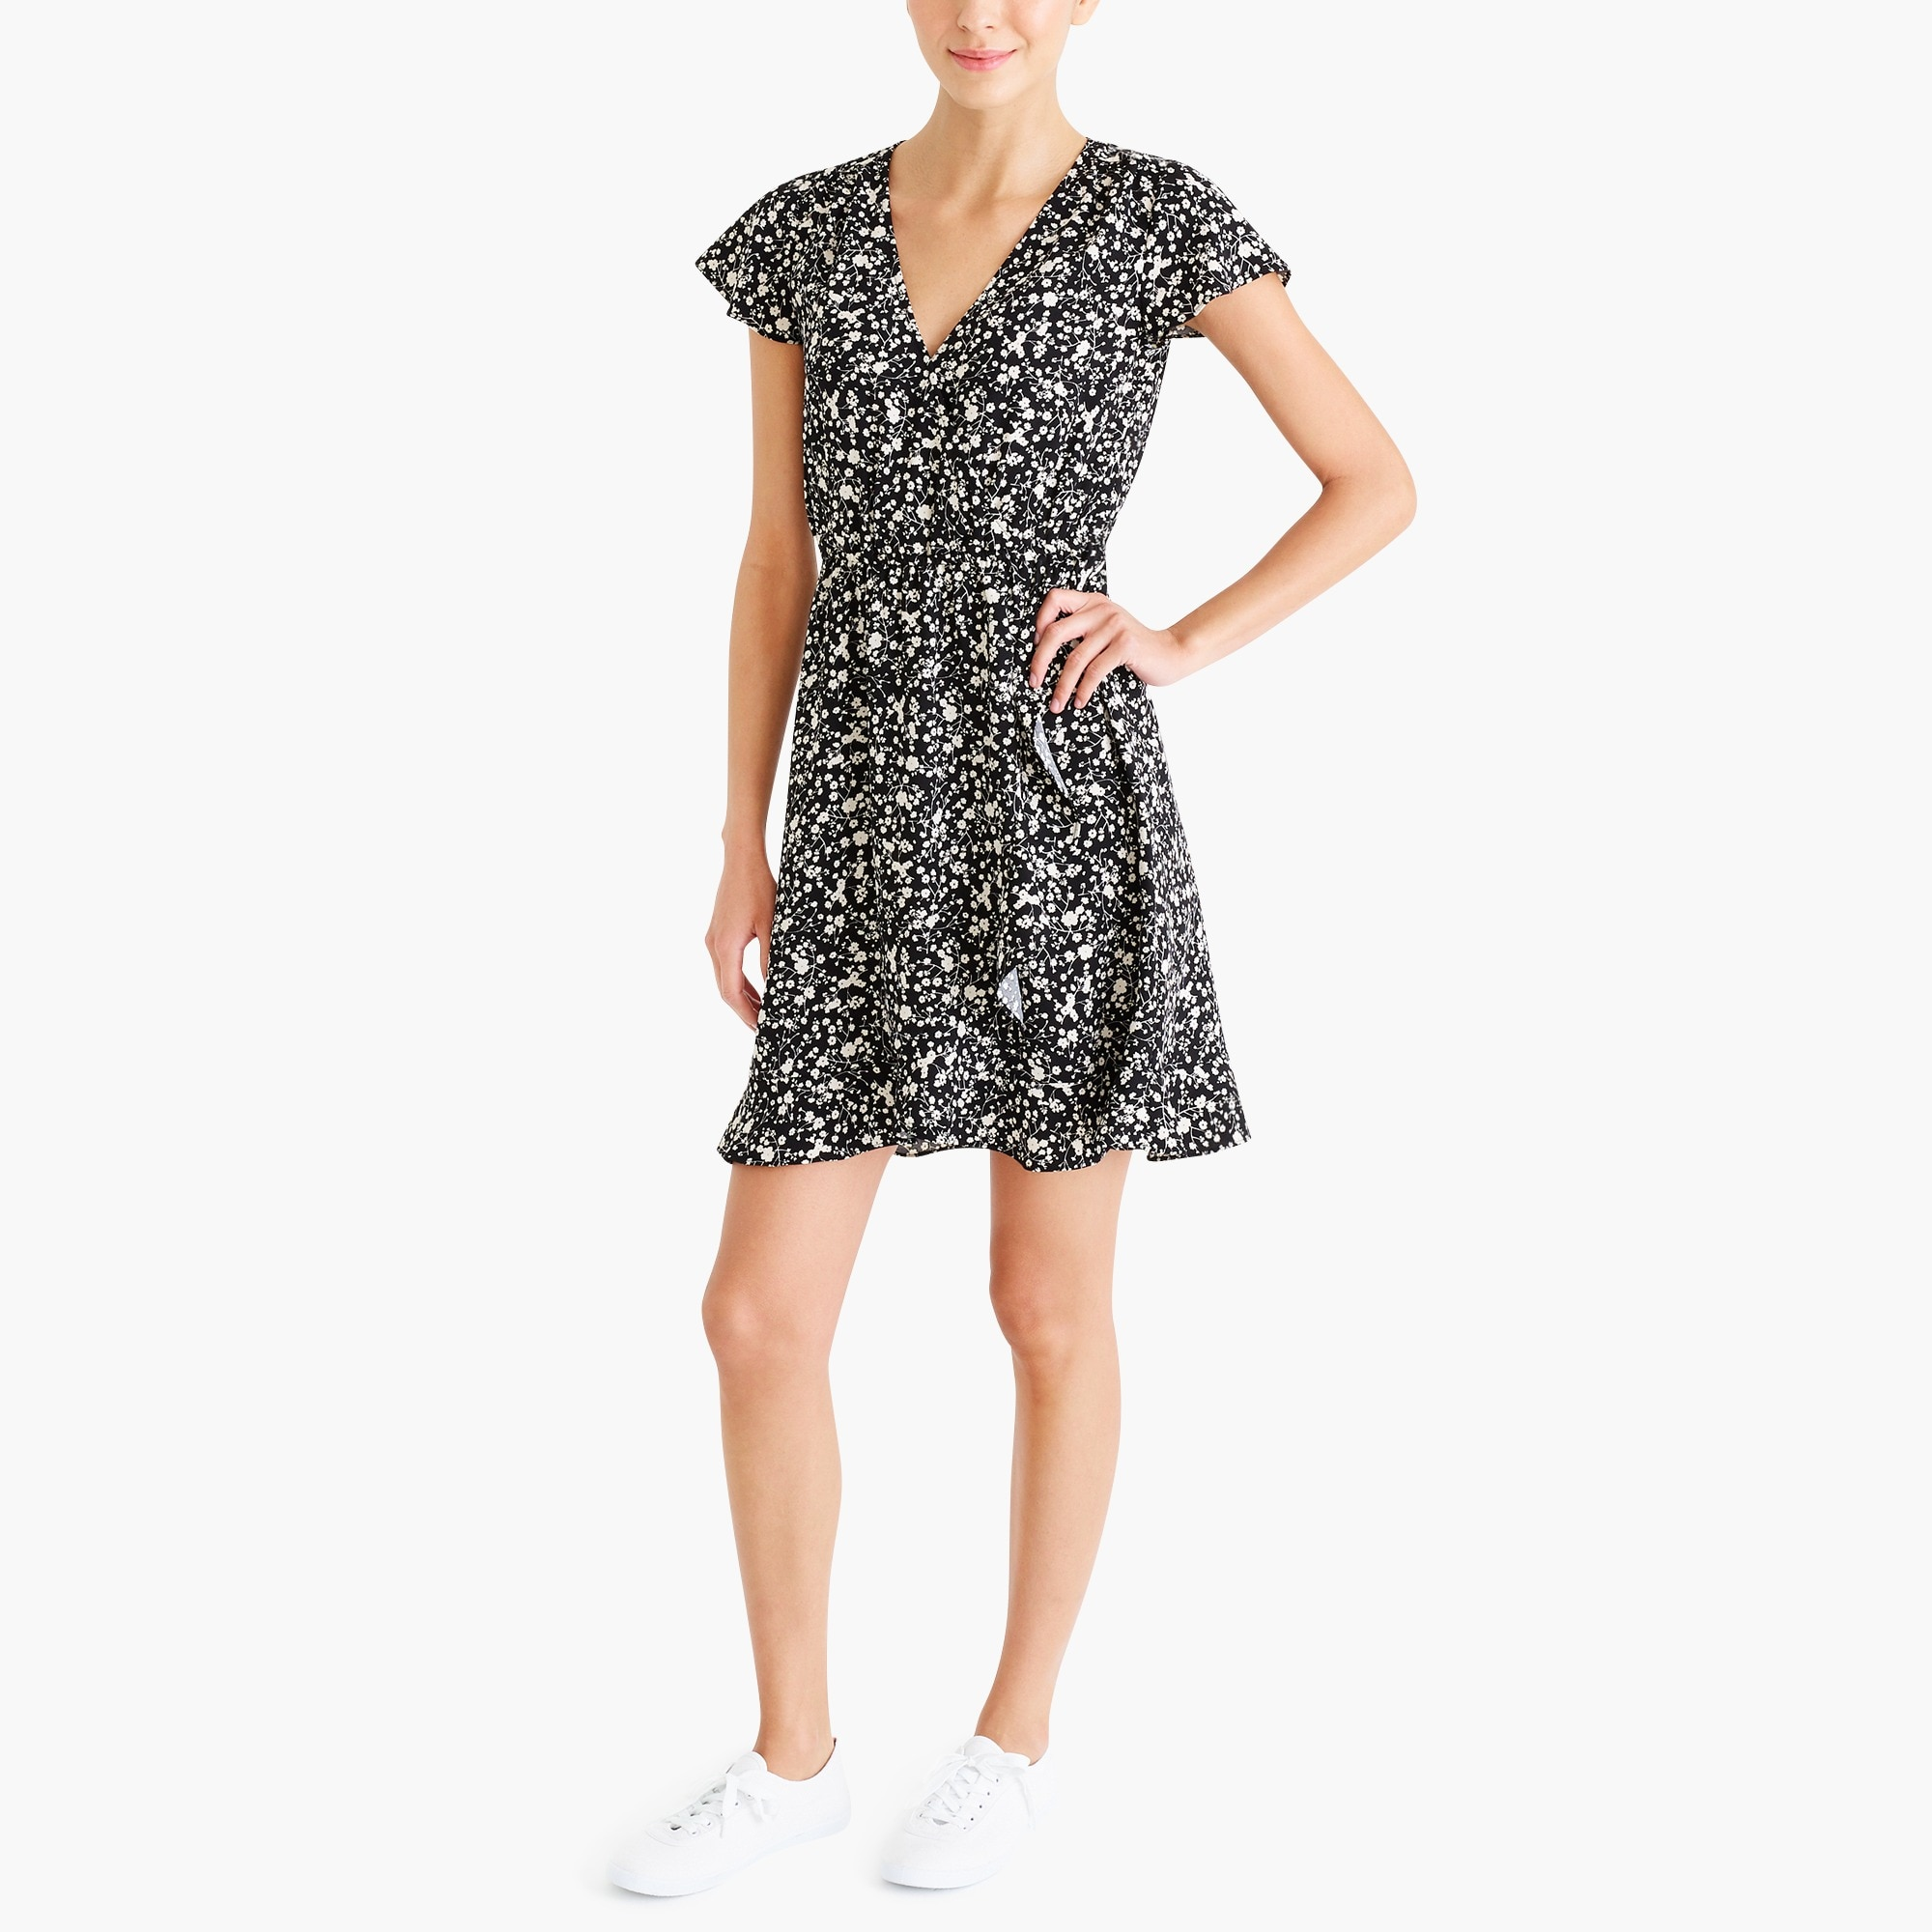 Image 1 for Printed ruffle faux-wrap dress